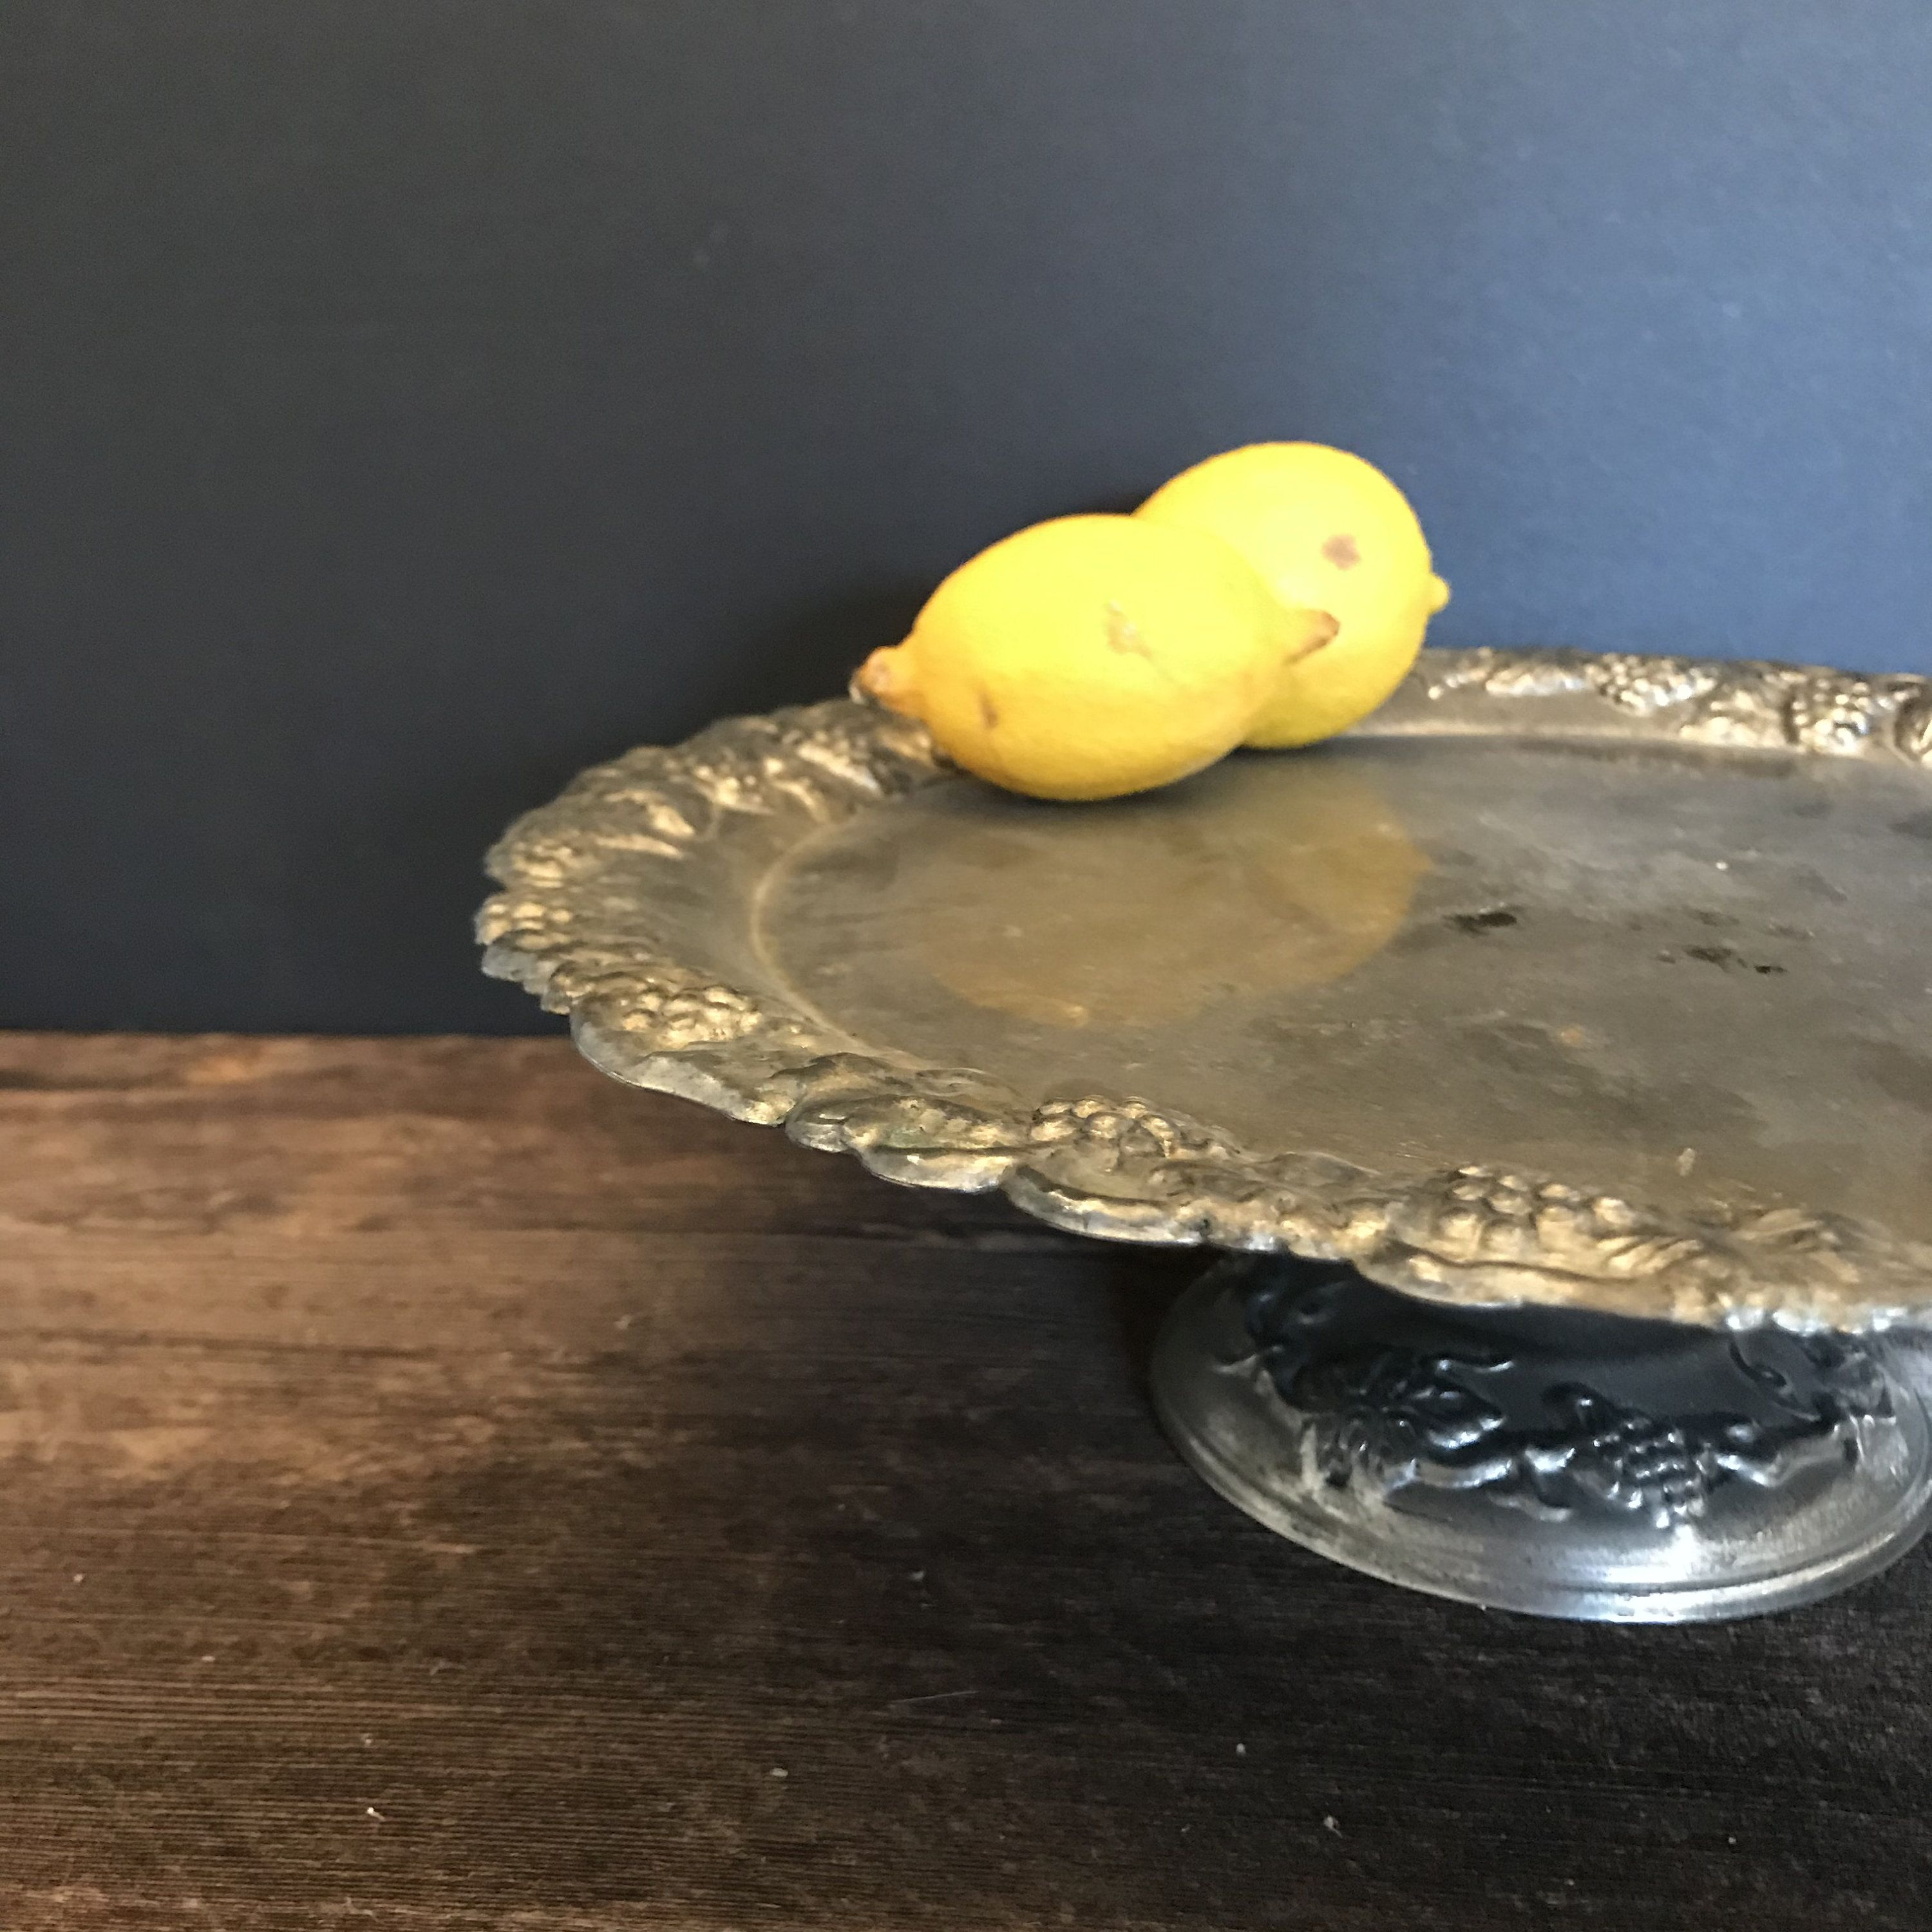 vintage cake stand silver pedestal cake tray rustic silver plated dessert server cake shop display ornate silver cake plate decorative prop -   16 rustic desserts Plating ideas